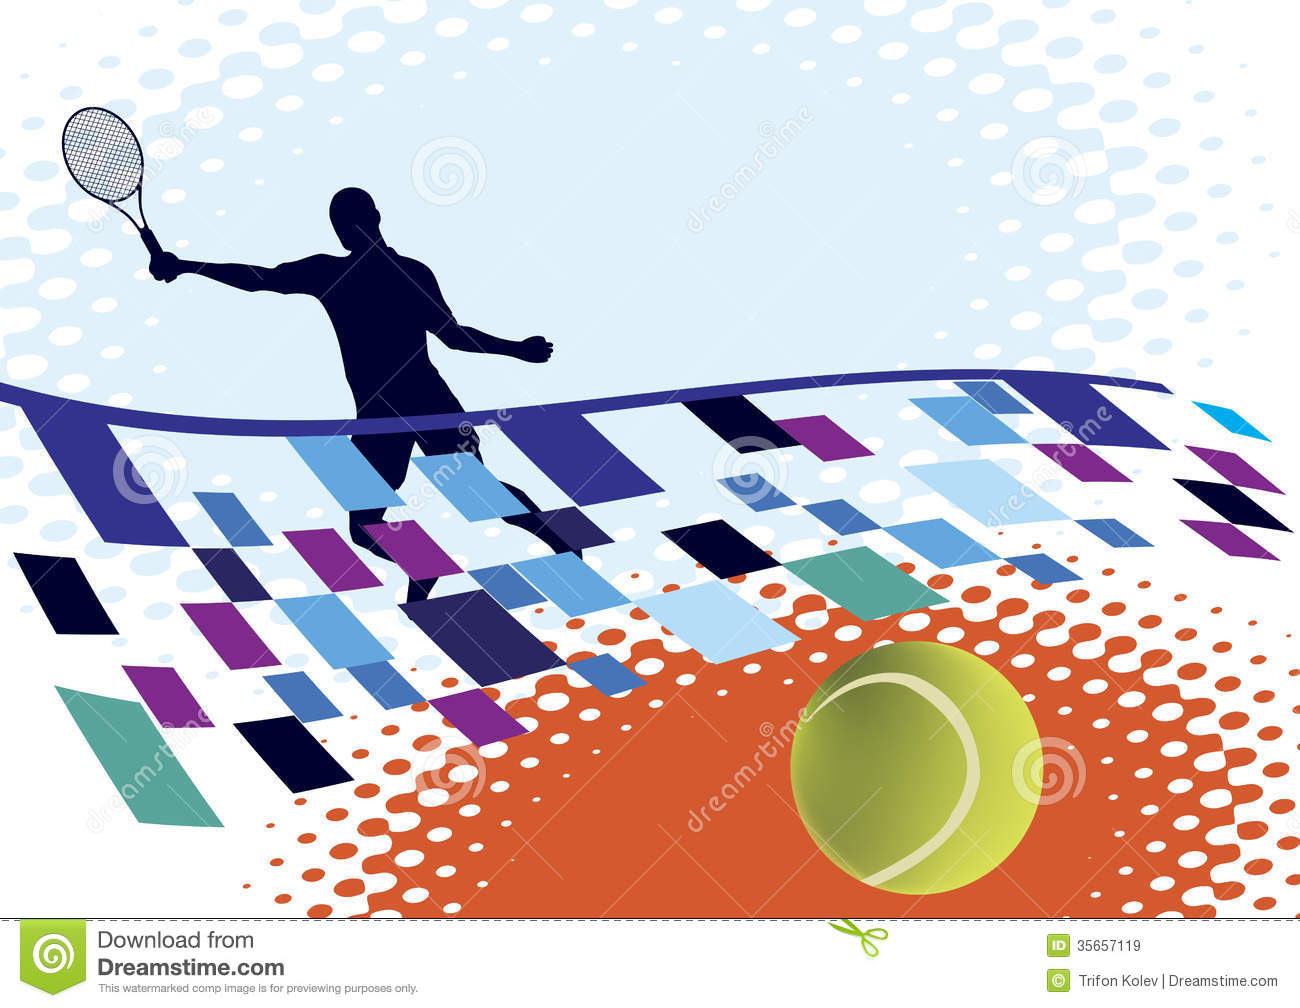 Abstract Sports Background Royalty Free Stock Image: Tennis Court Royalty Free Stock Images